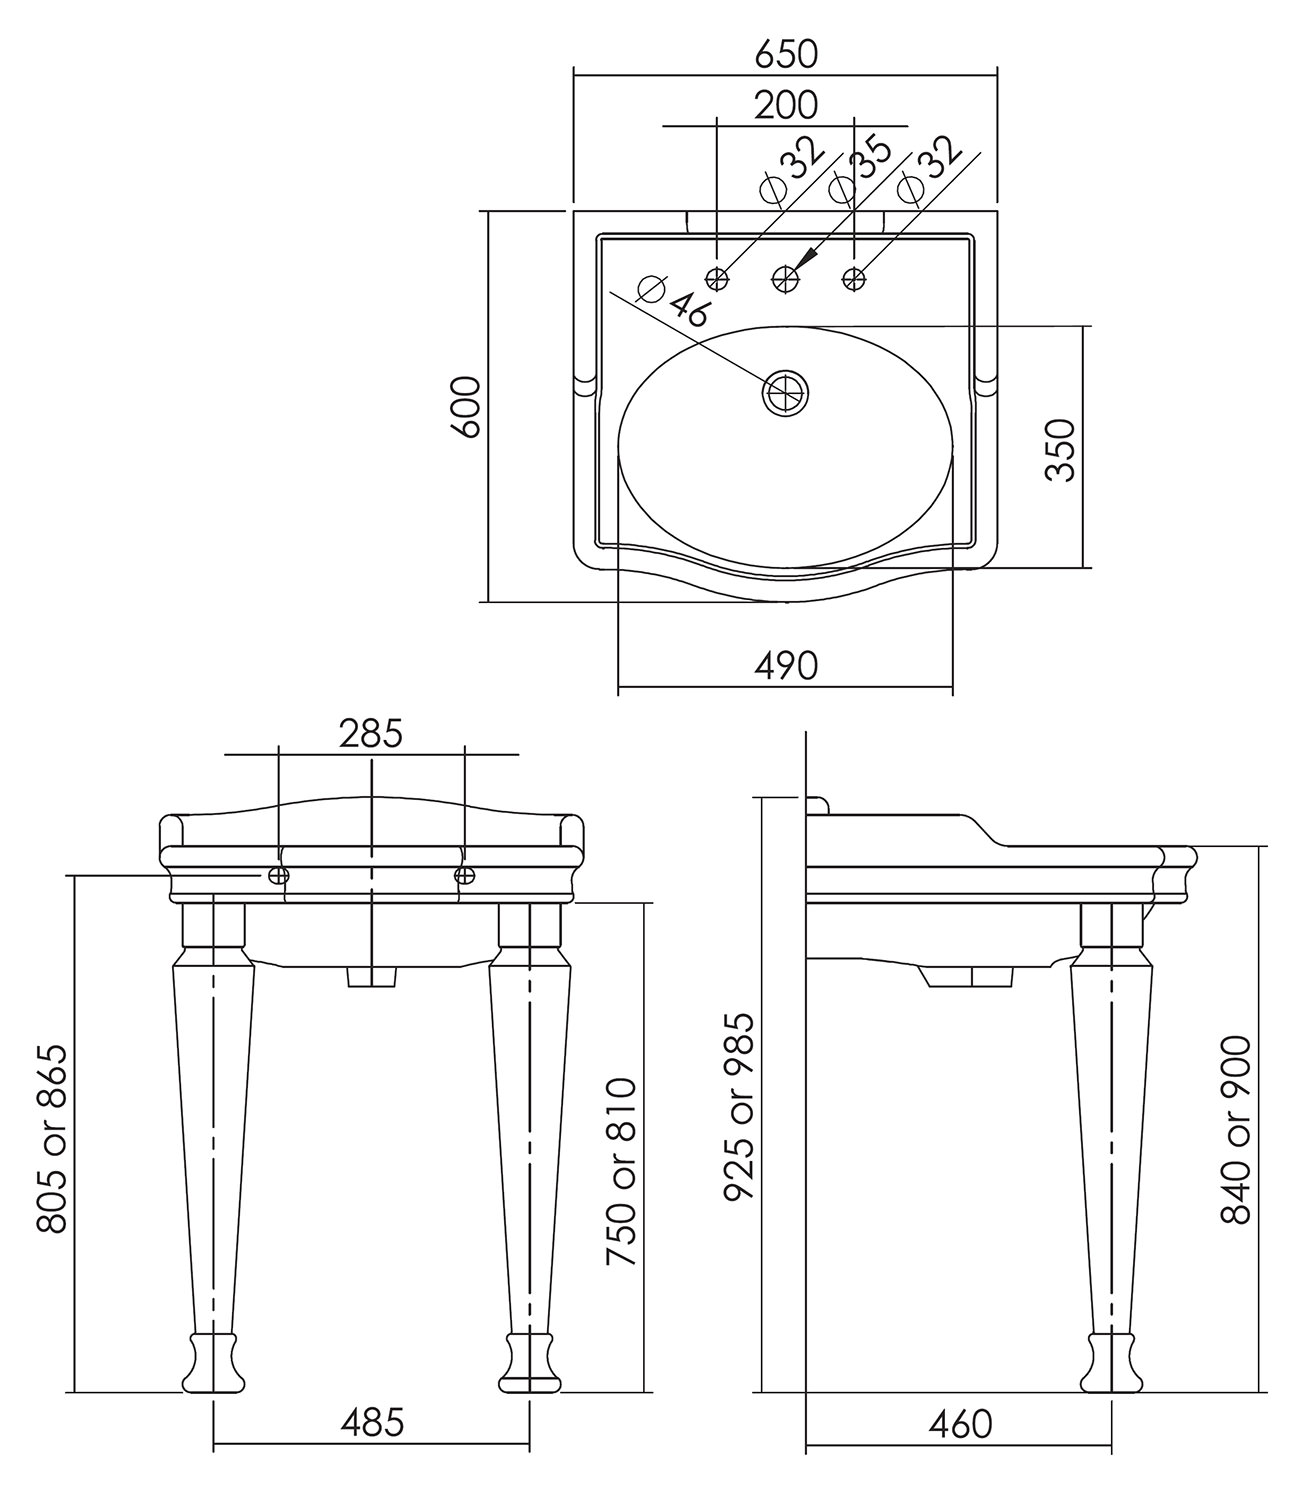 Towel Stands For Bathrooms. Image Result For Towel Stands For Bathrooms